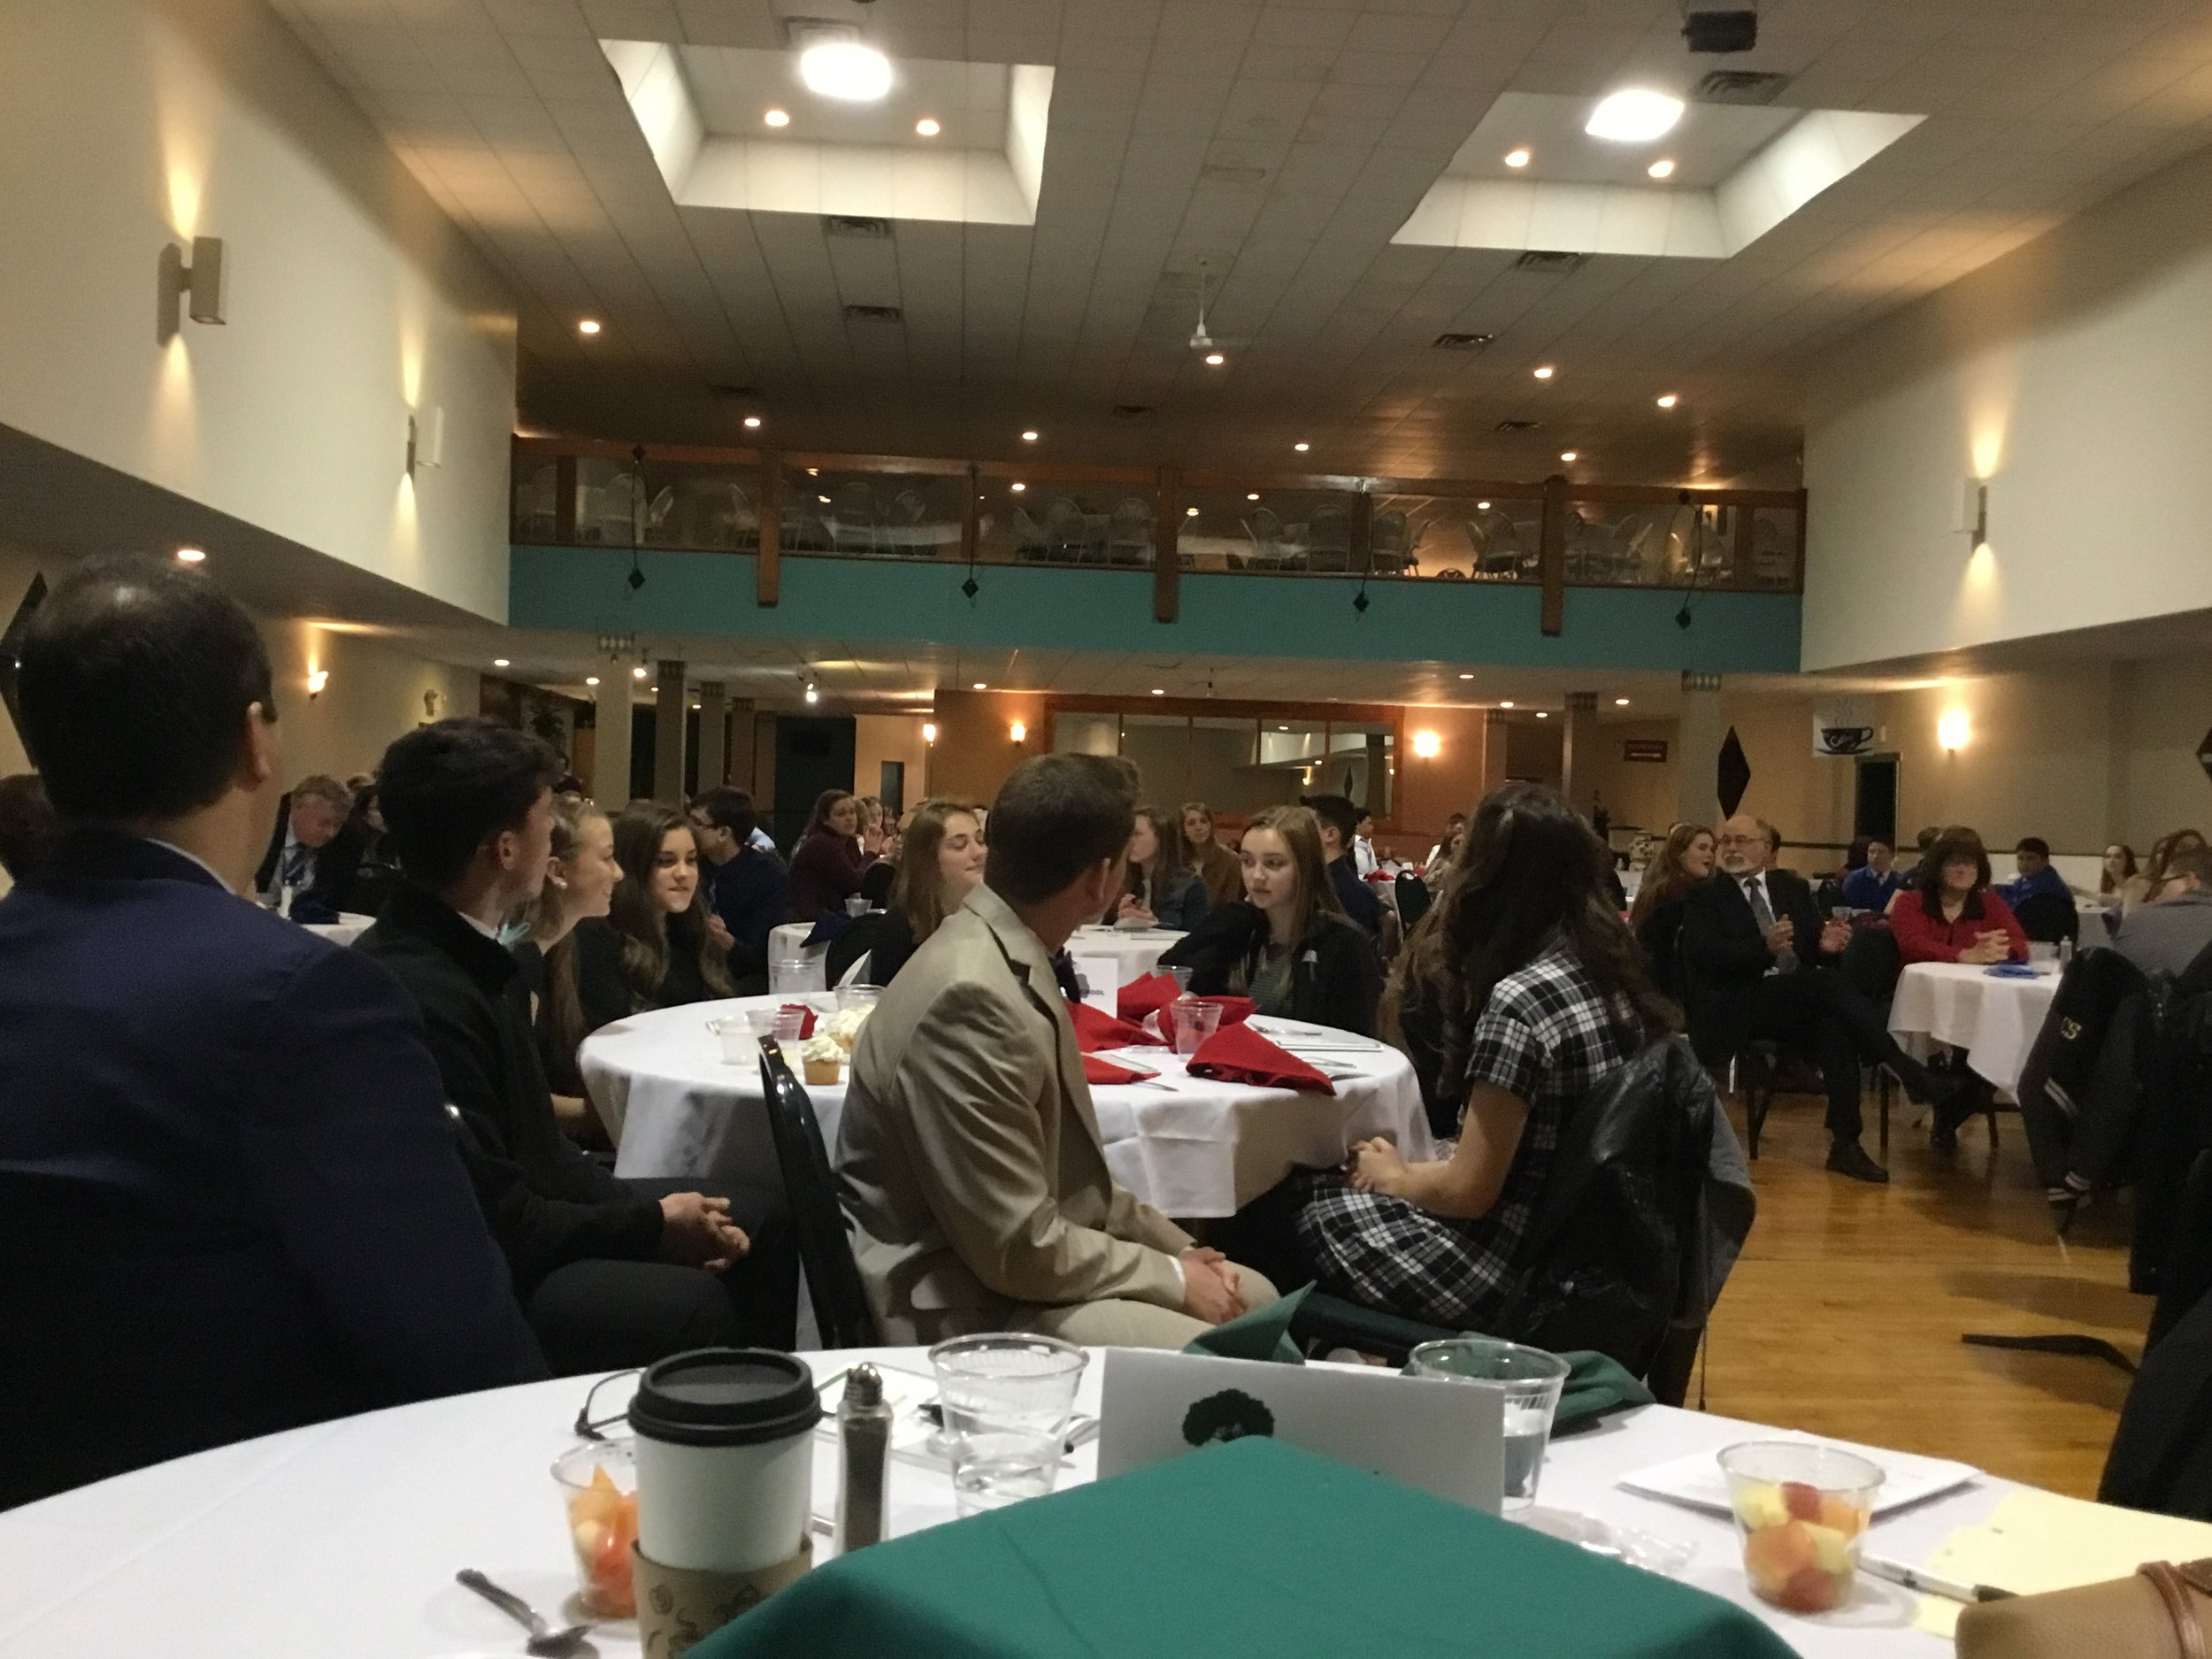 Nearly 200 Students and School Administrator were in attendance - April 16, 2019.    Thank you!